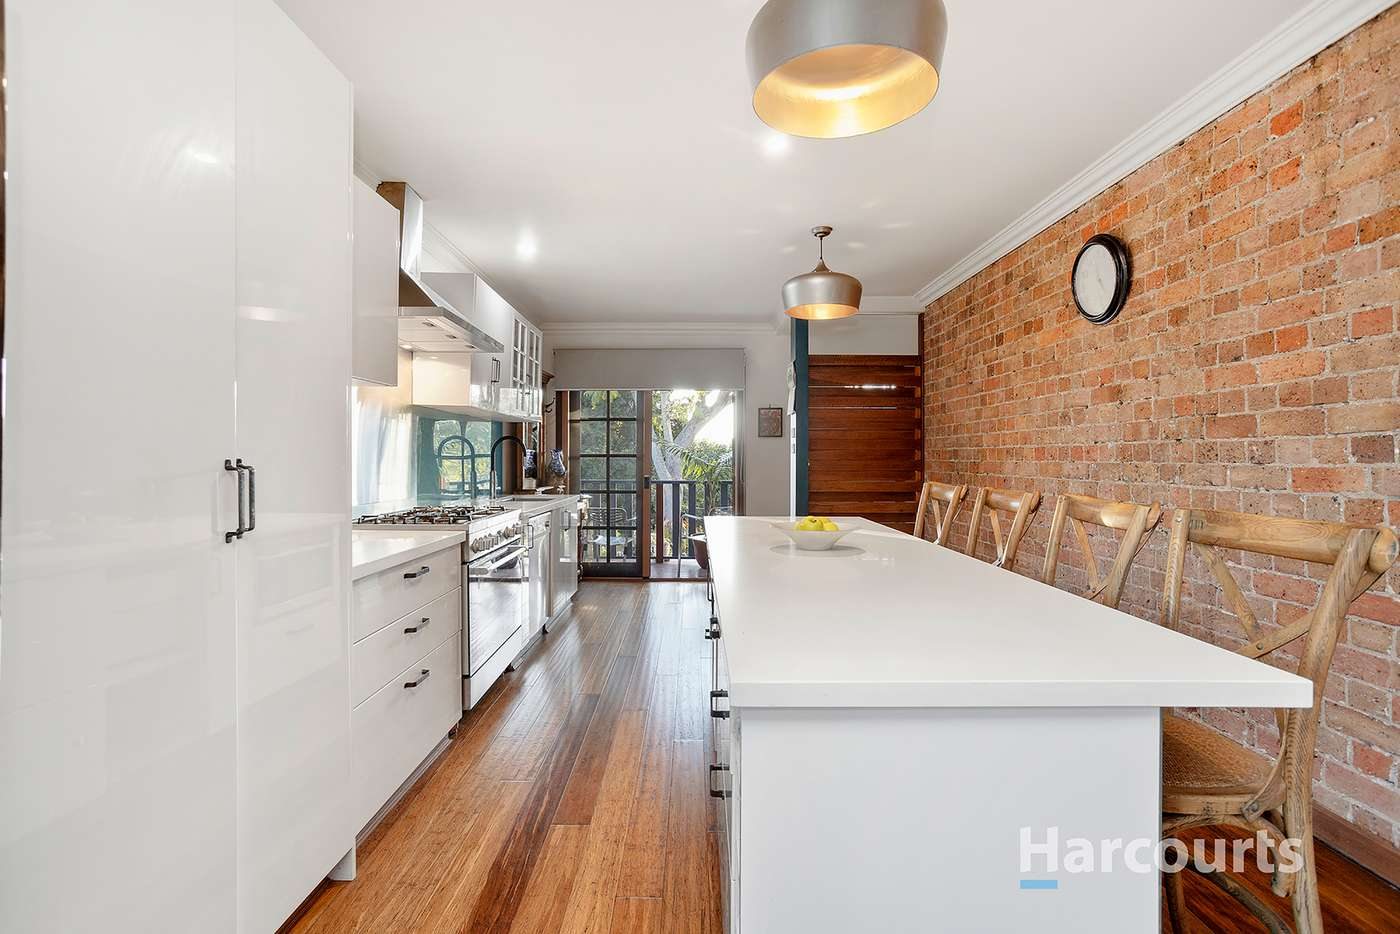 Fifth view of Homely house listing, 45 Metcalfe Street, Wallsend NSW 2287